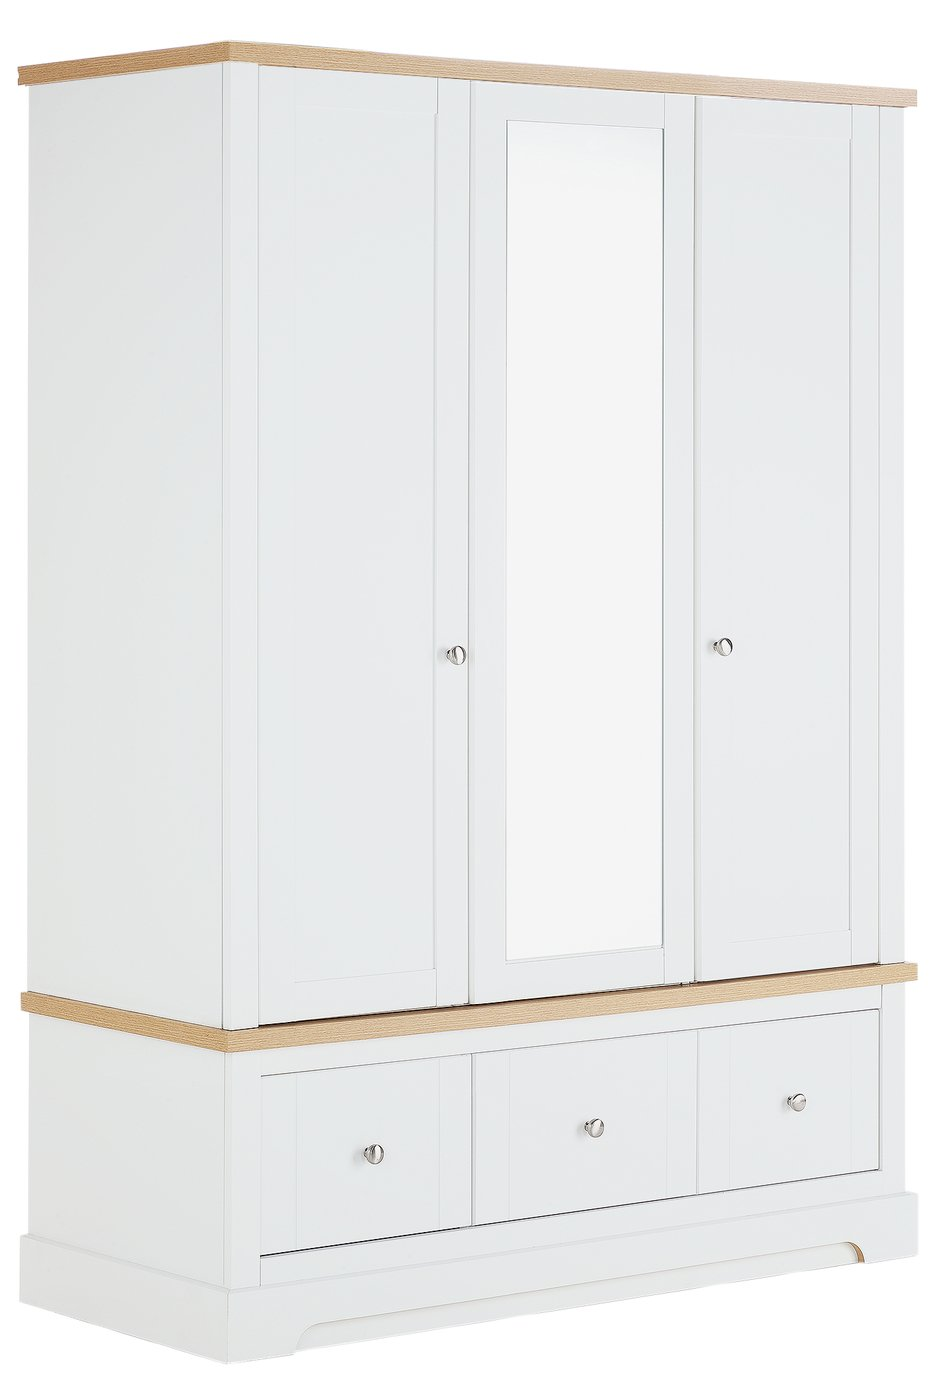 Argos Home Westbury 3 Door 3 Drawer Wardrobe - White